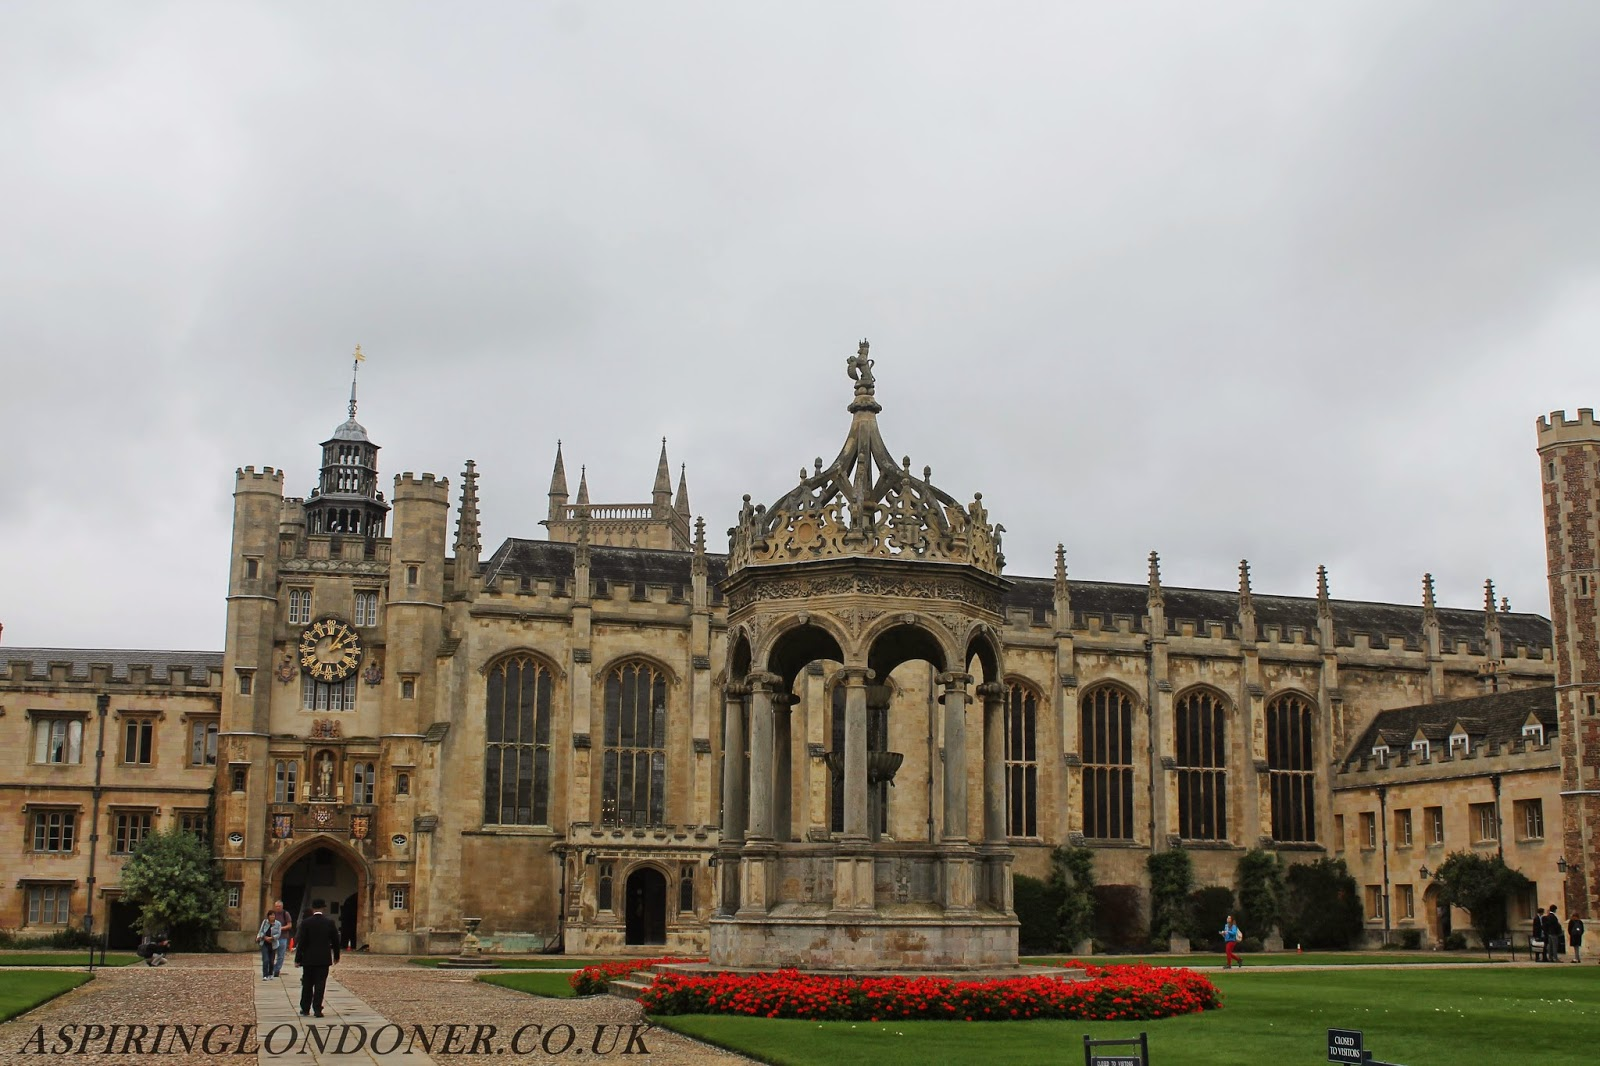 Trinity College, University of Cambridge - Aspiring Londoner